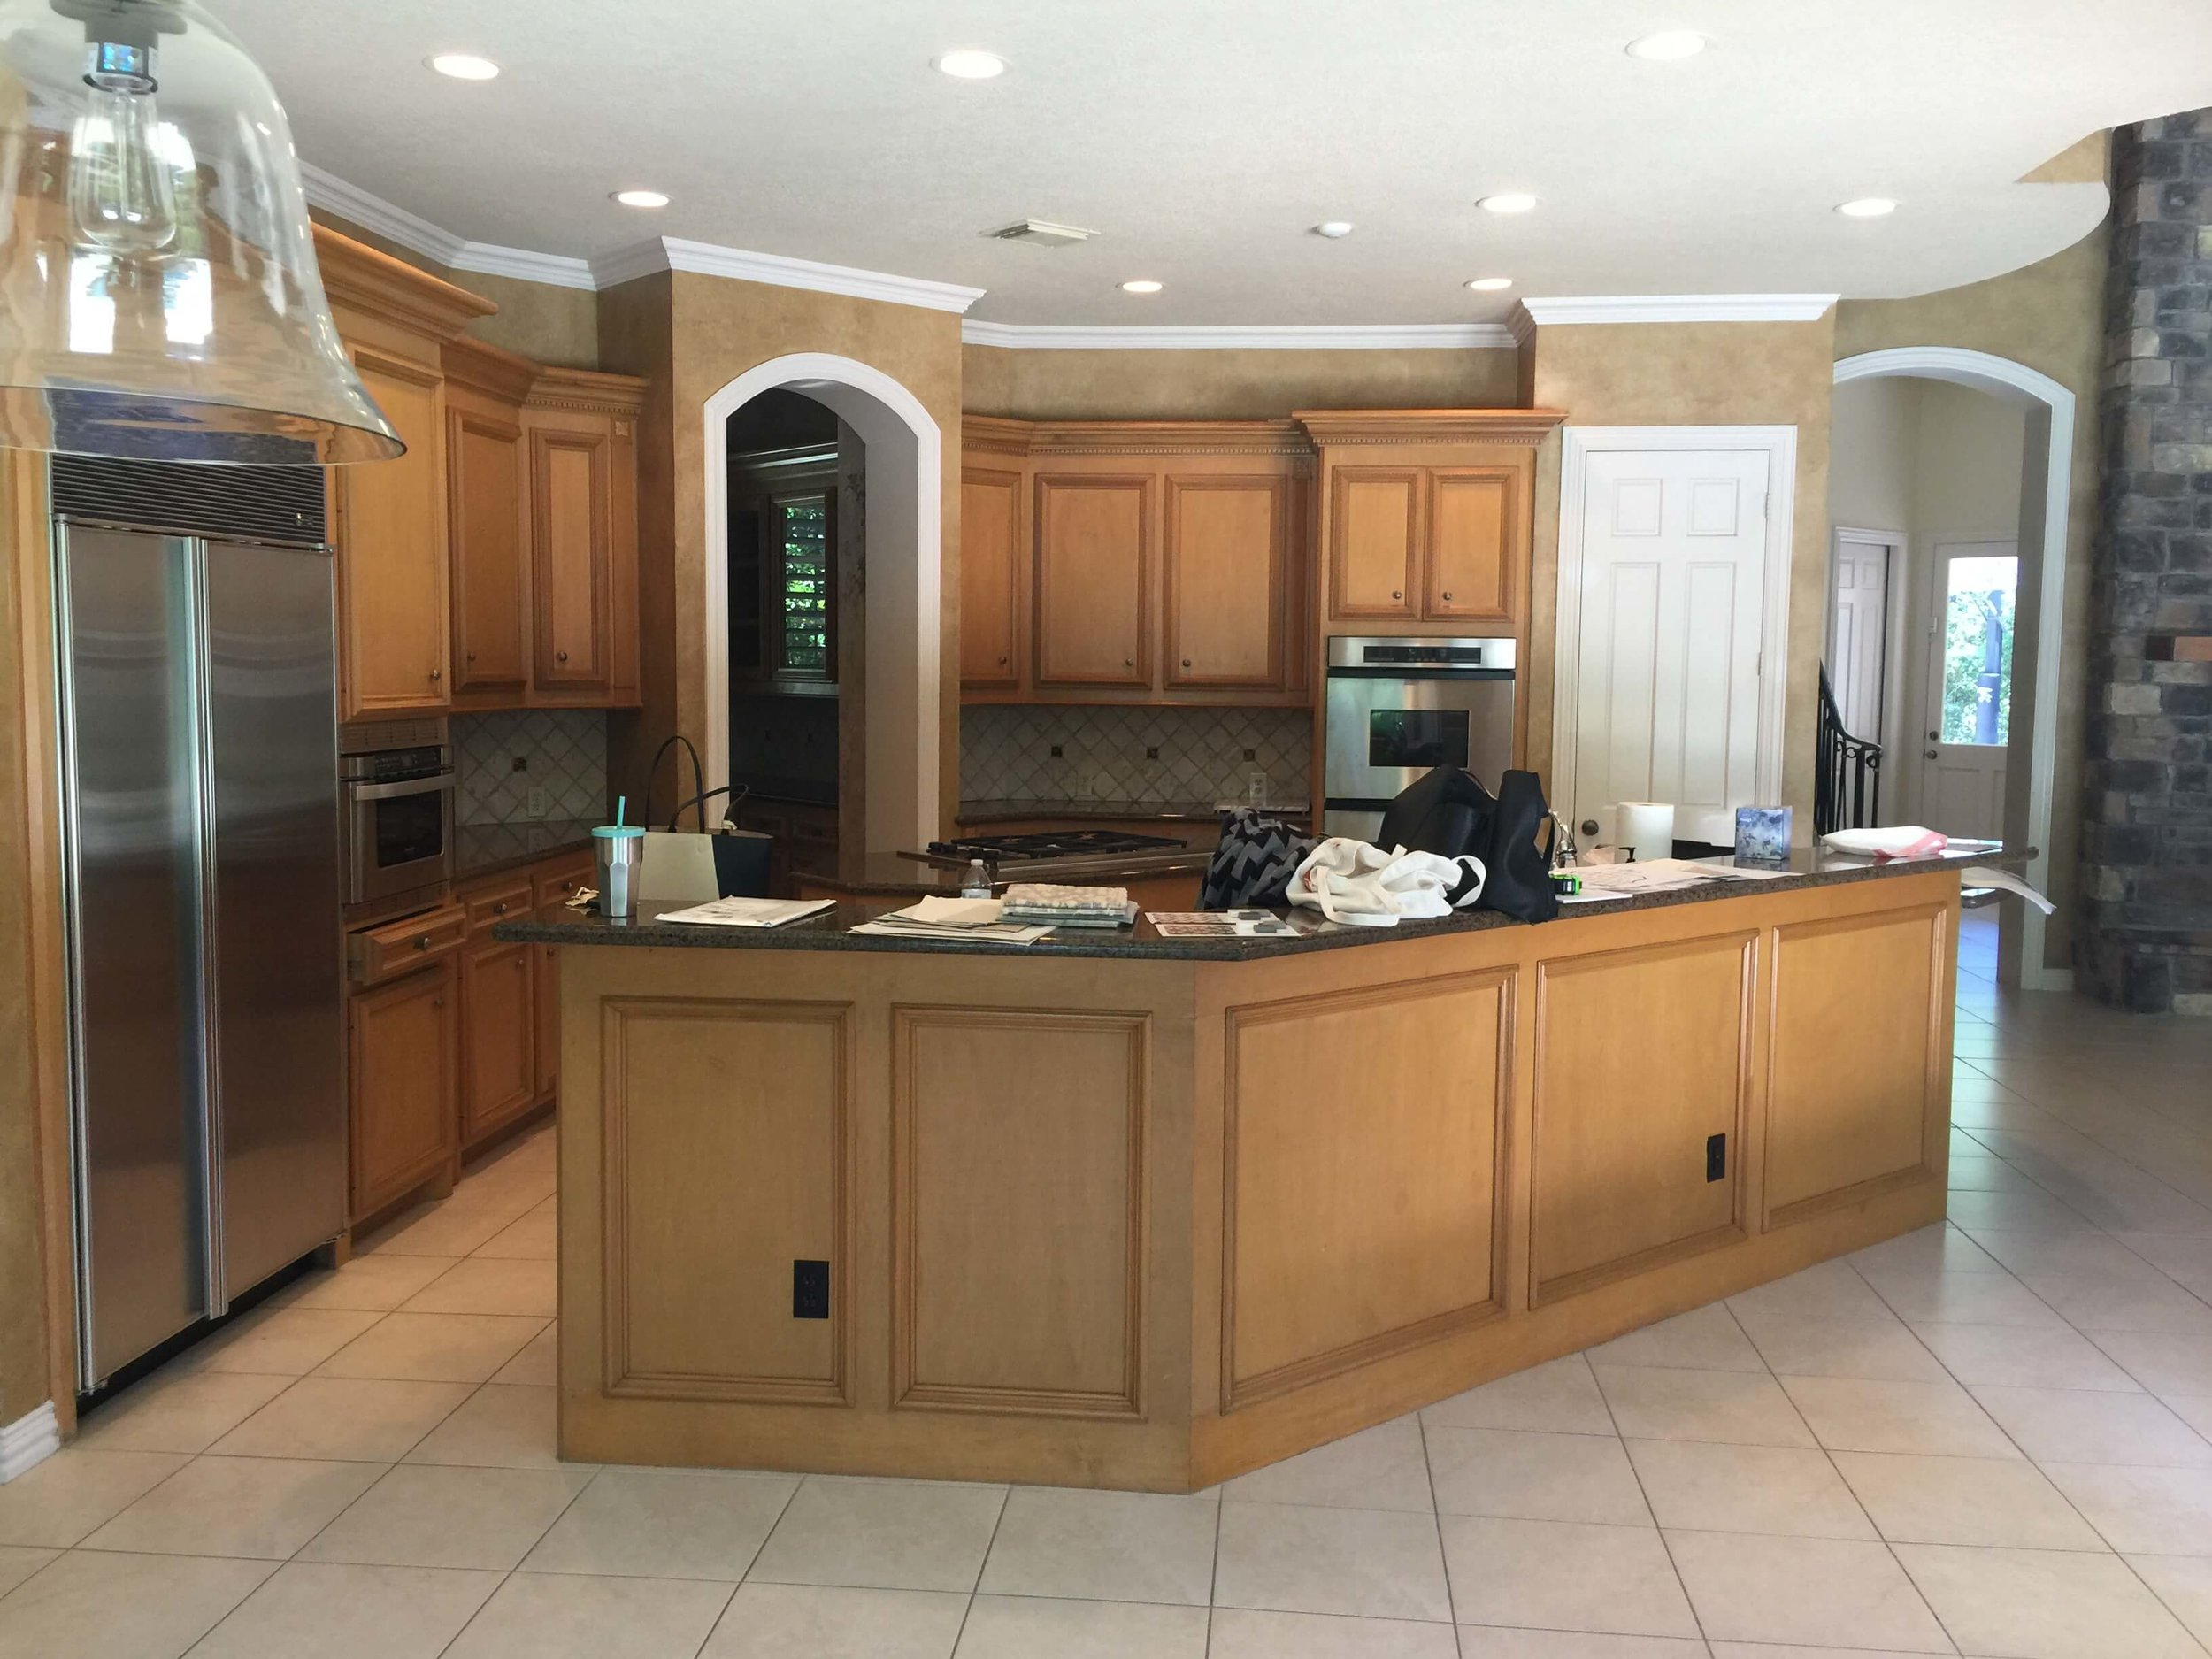 BEFORE - Kitchen with oak cabinets, faux finish walls, and plain tile floor